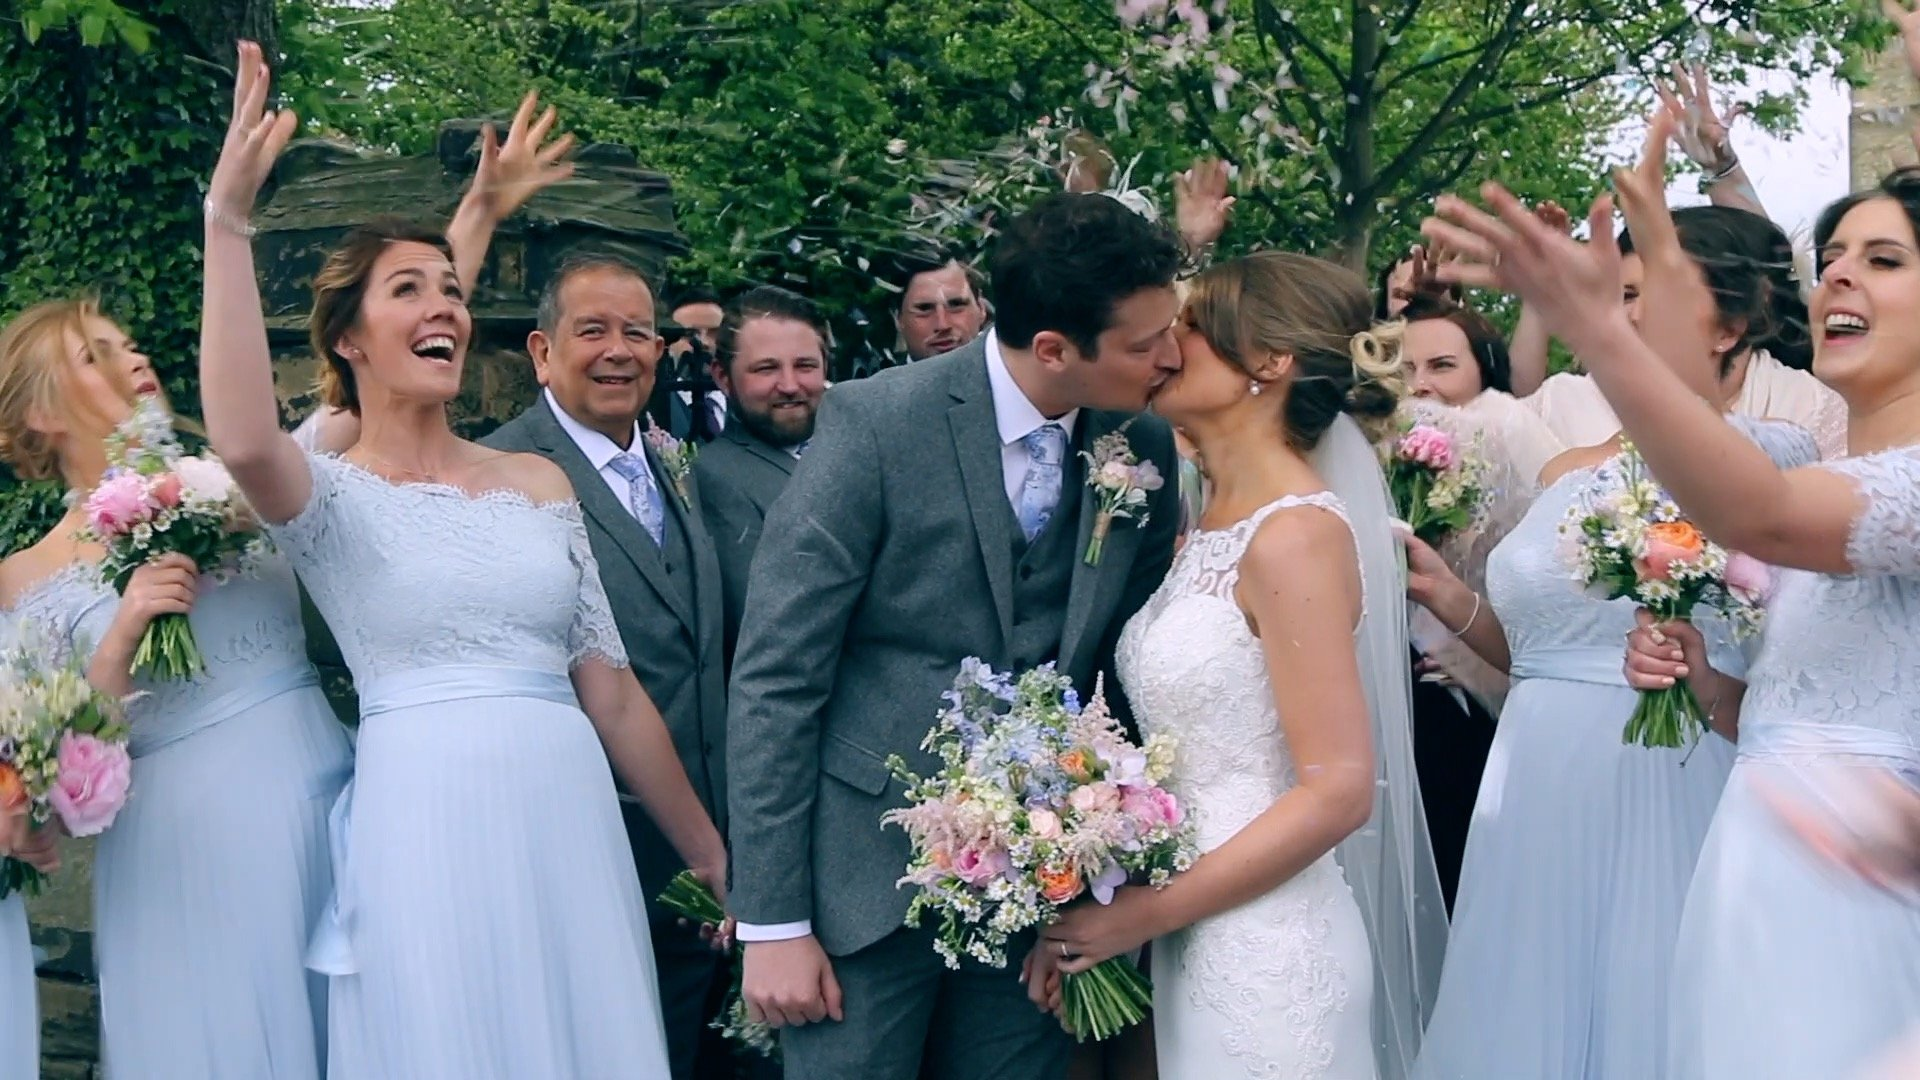 Wedding videography in manchester